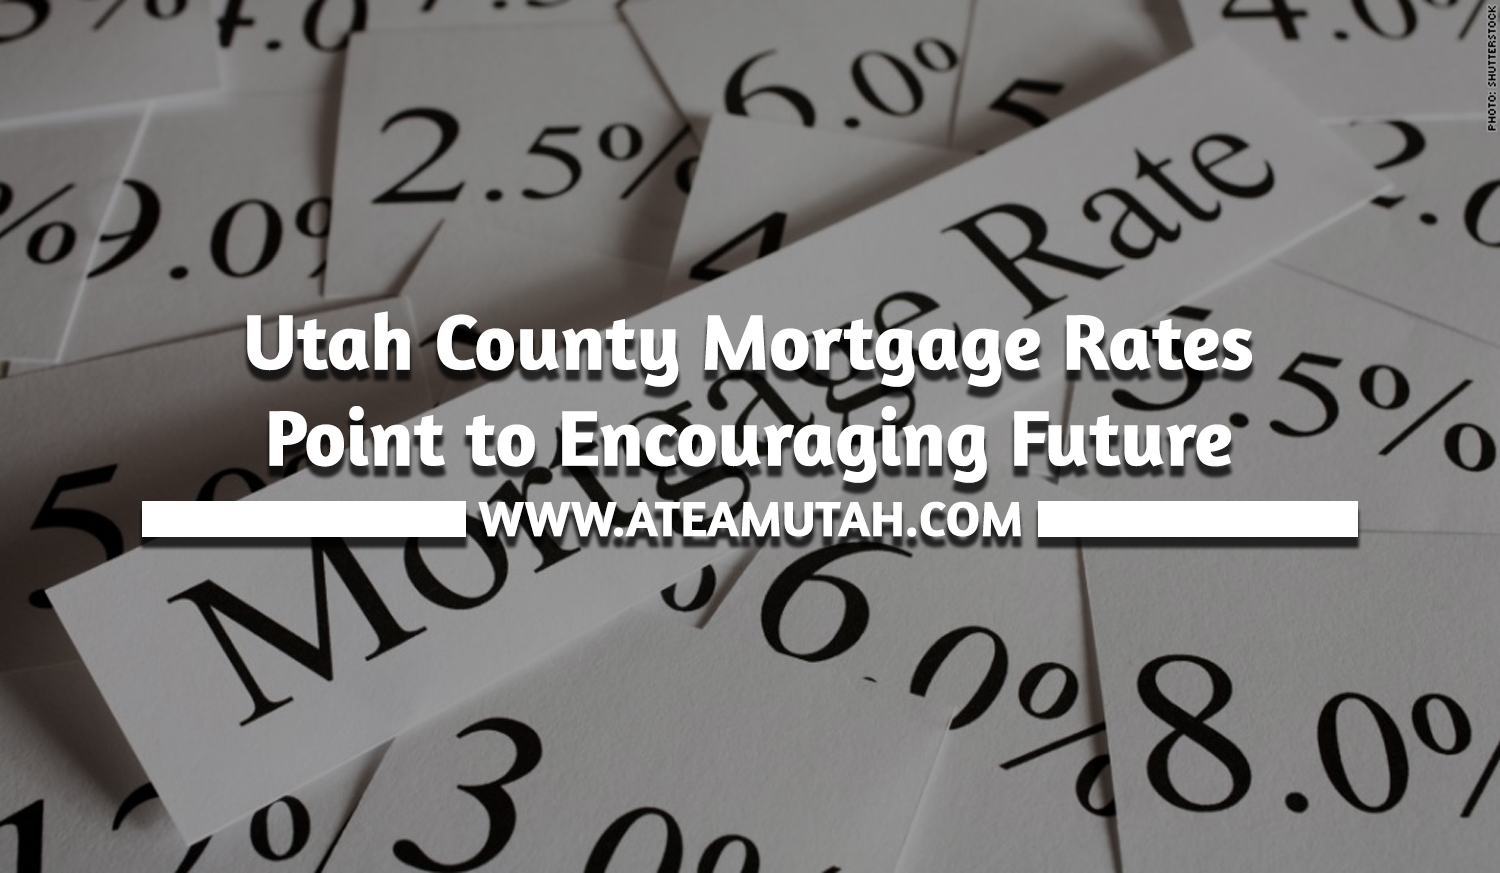 Utah County Mortgage Rates Point to Encouraging Future